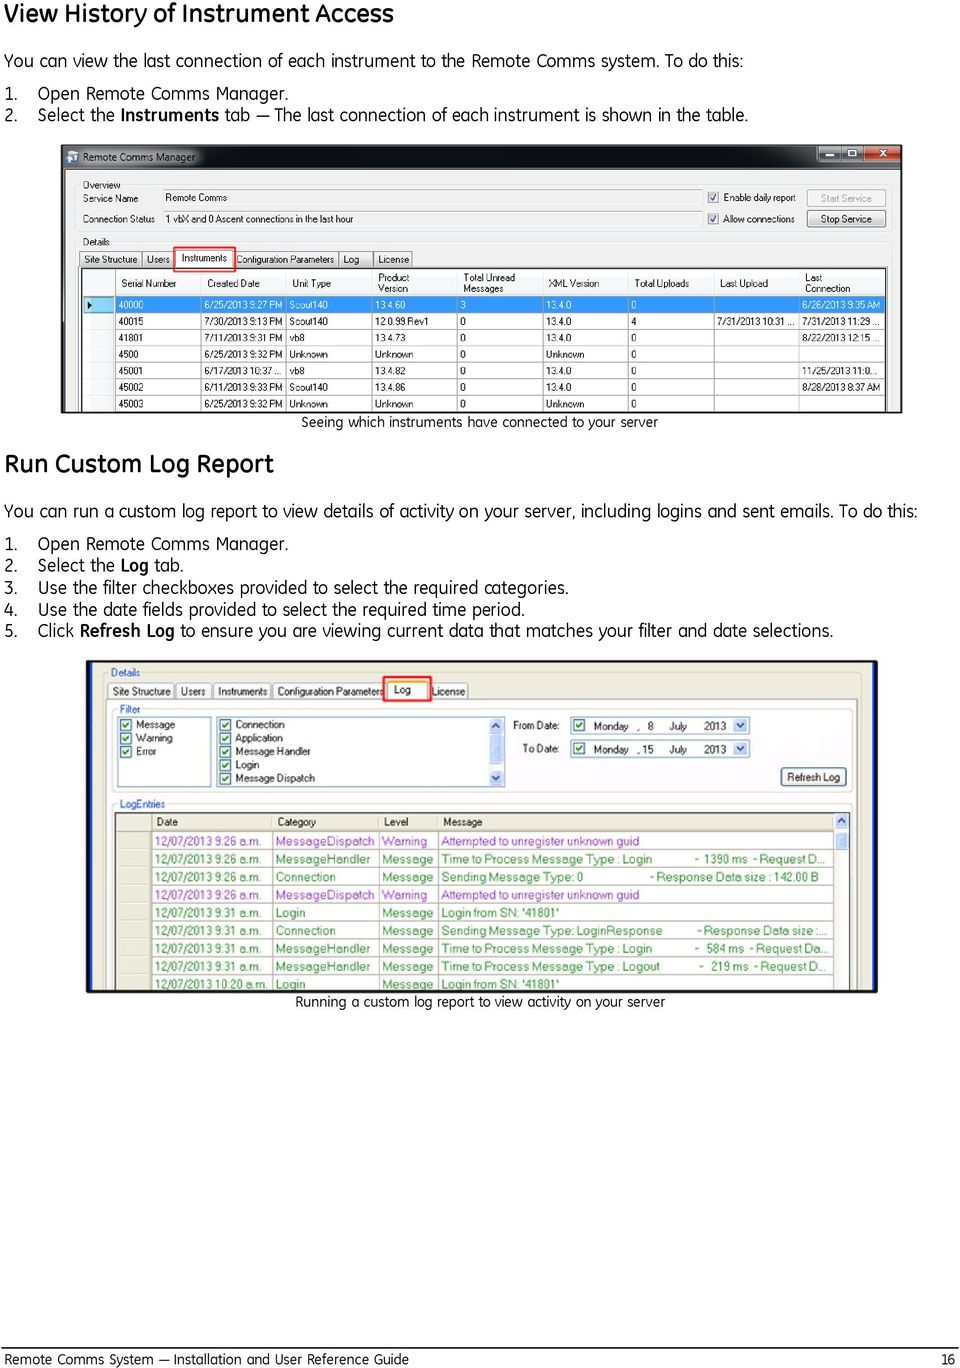 Run Custom Log Report Seeing which instruments have connected to your server You can run a custom log report to view details of activity on your server, including logins and sent emails.